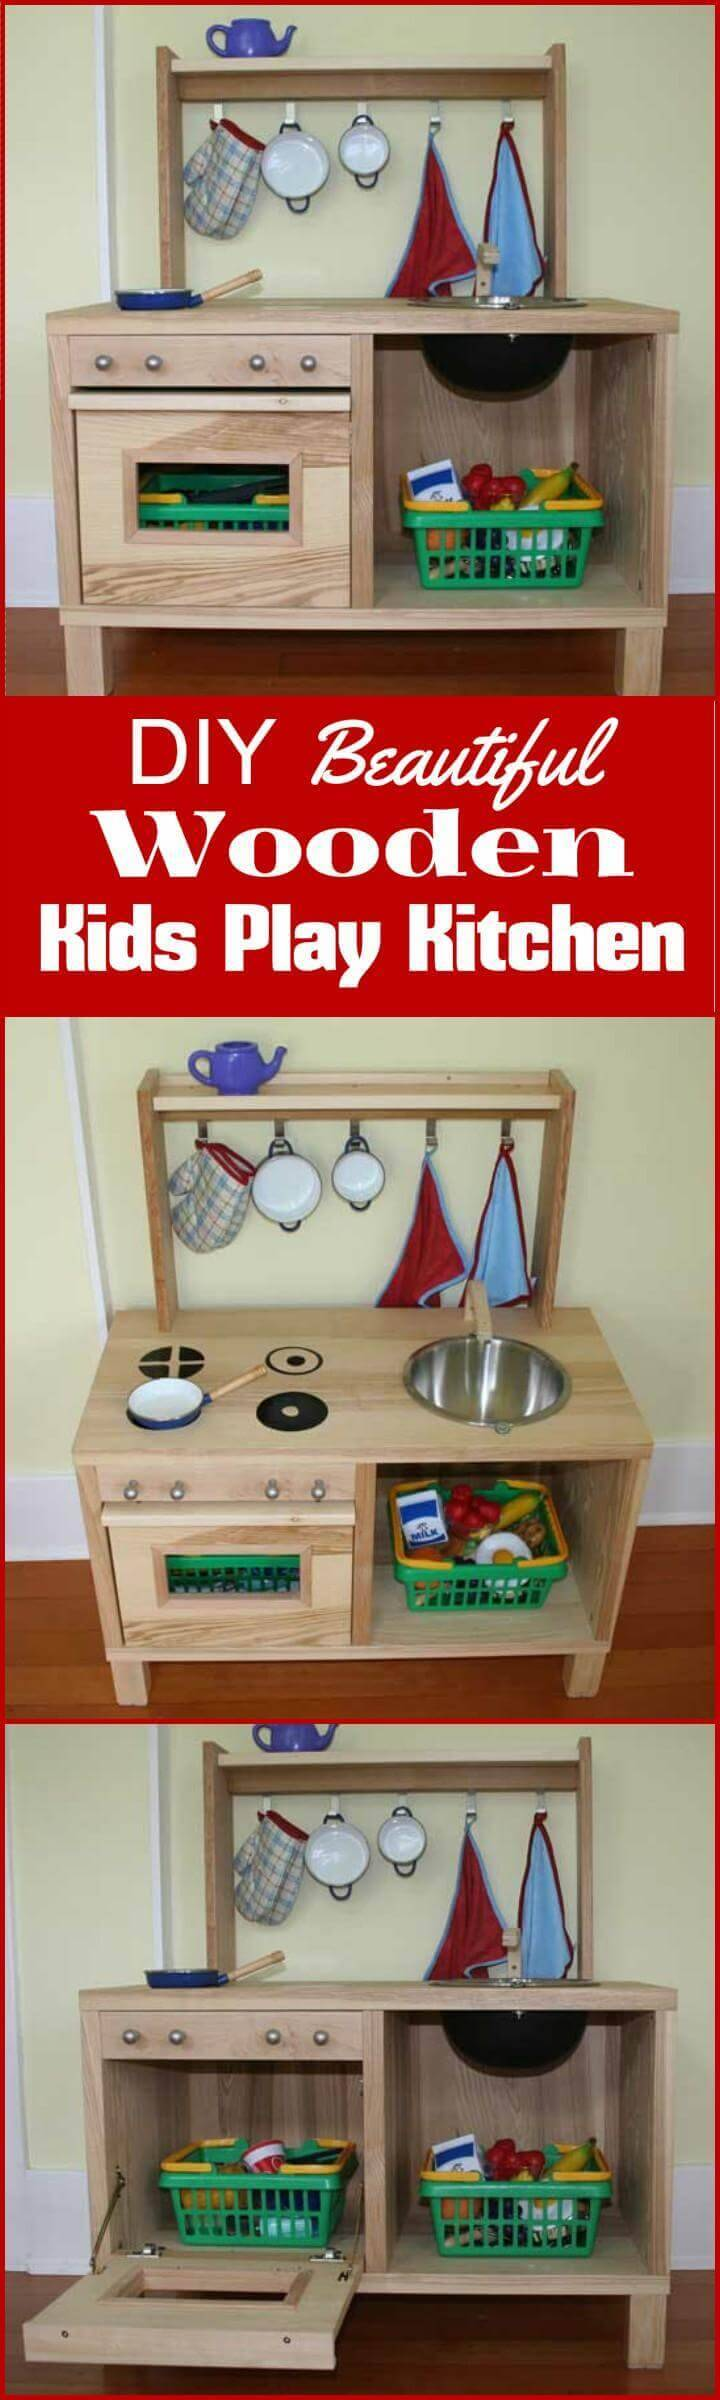 homemade wooden kids play kitchen